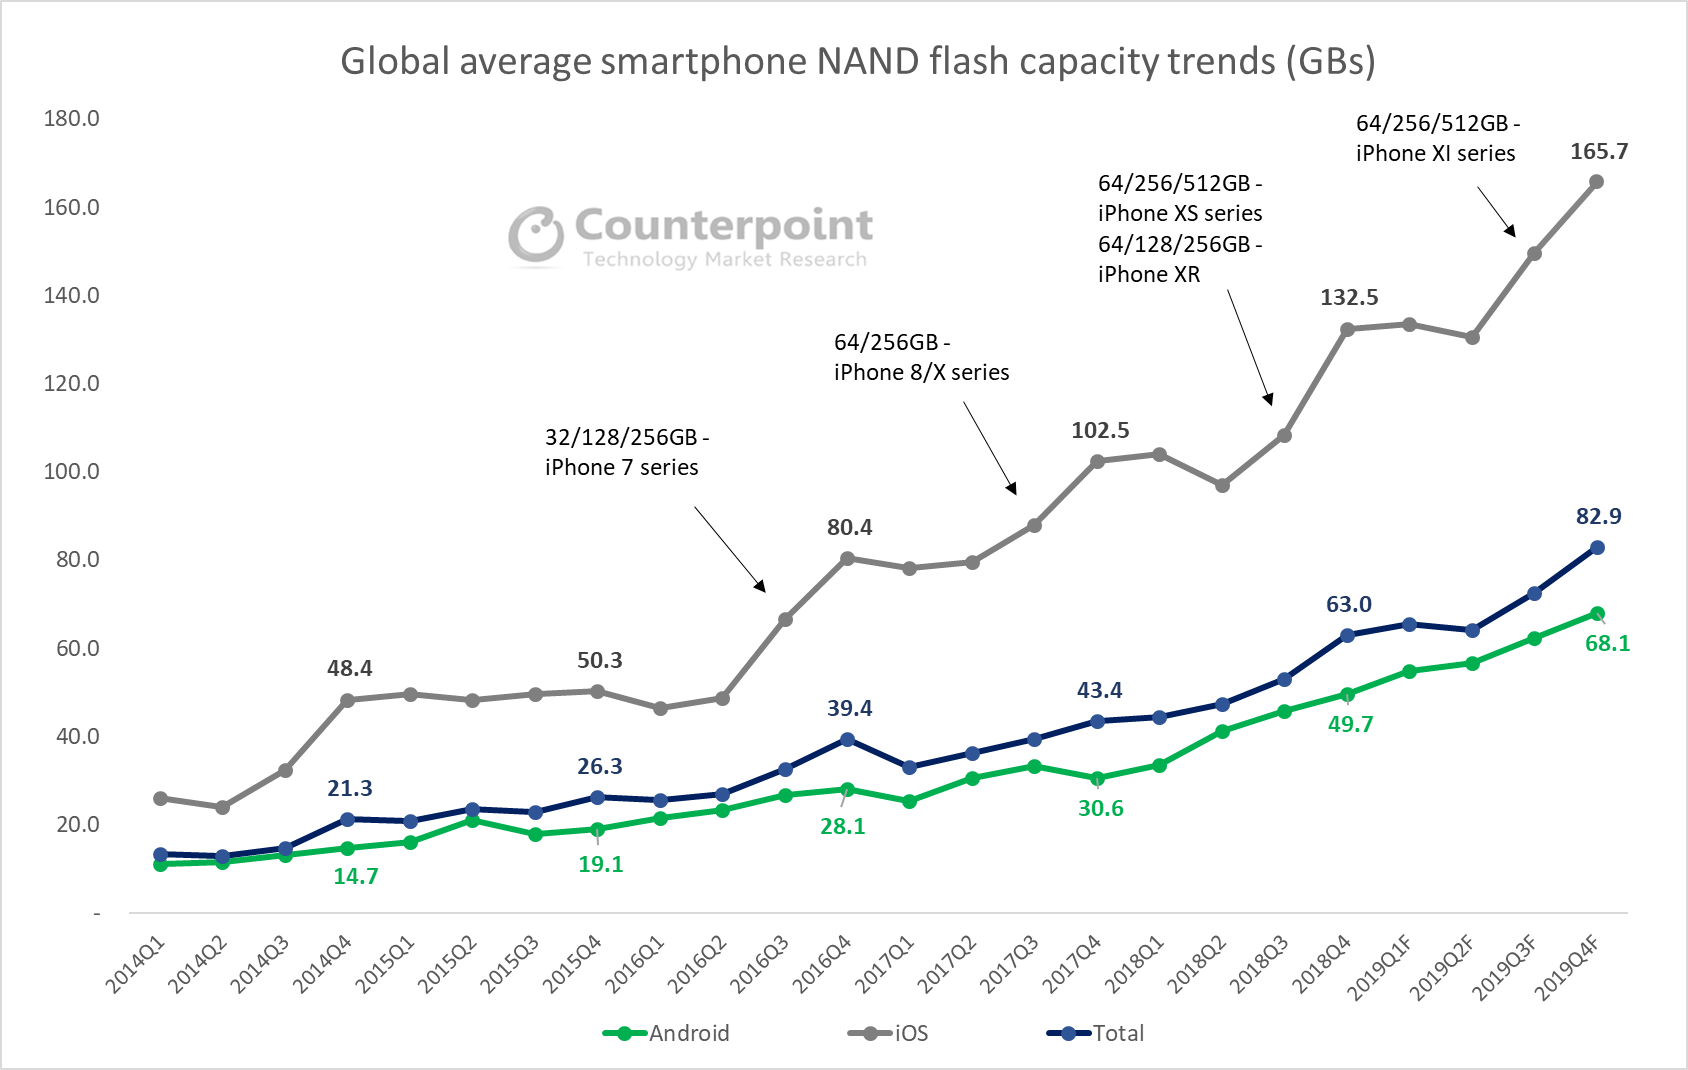 Global Average Smartphone NAND Flash Capacity Trends (GBs)